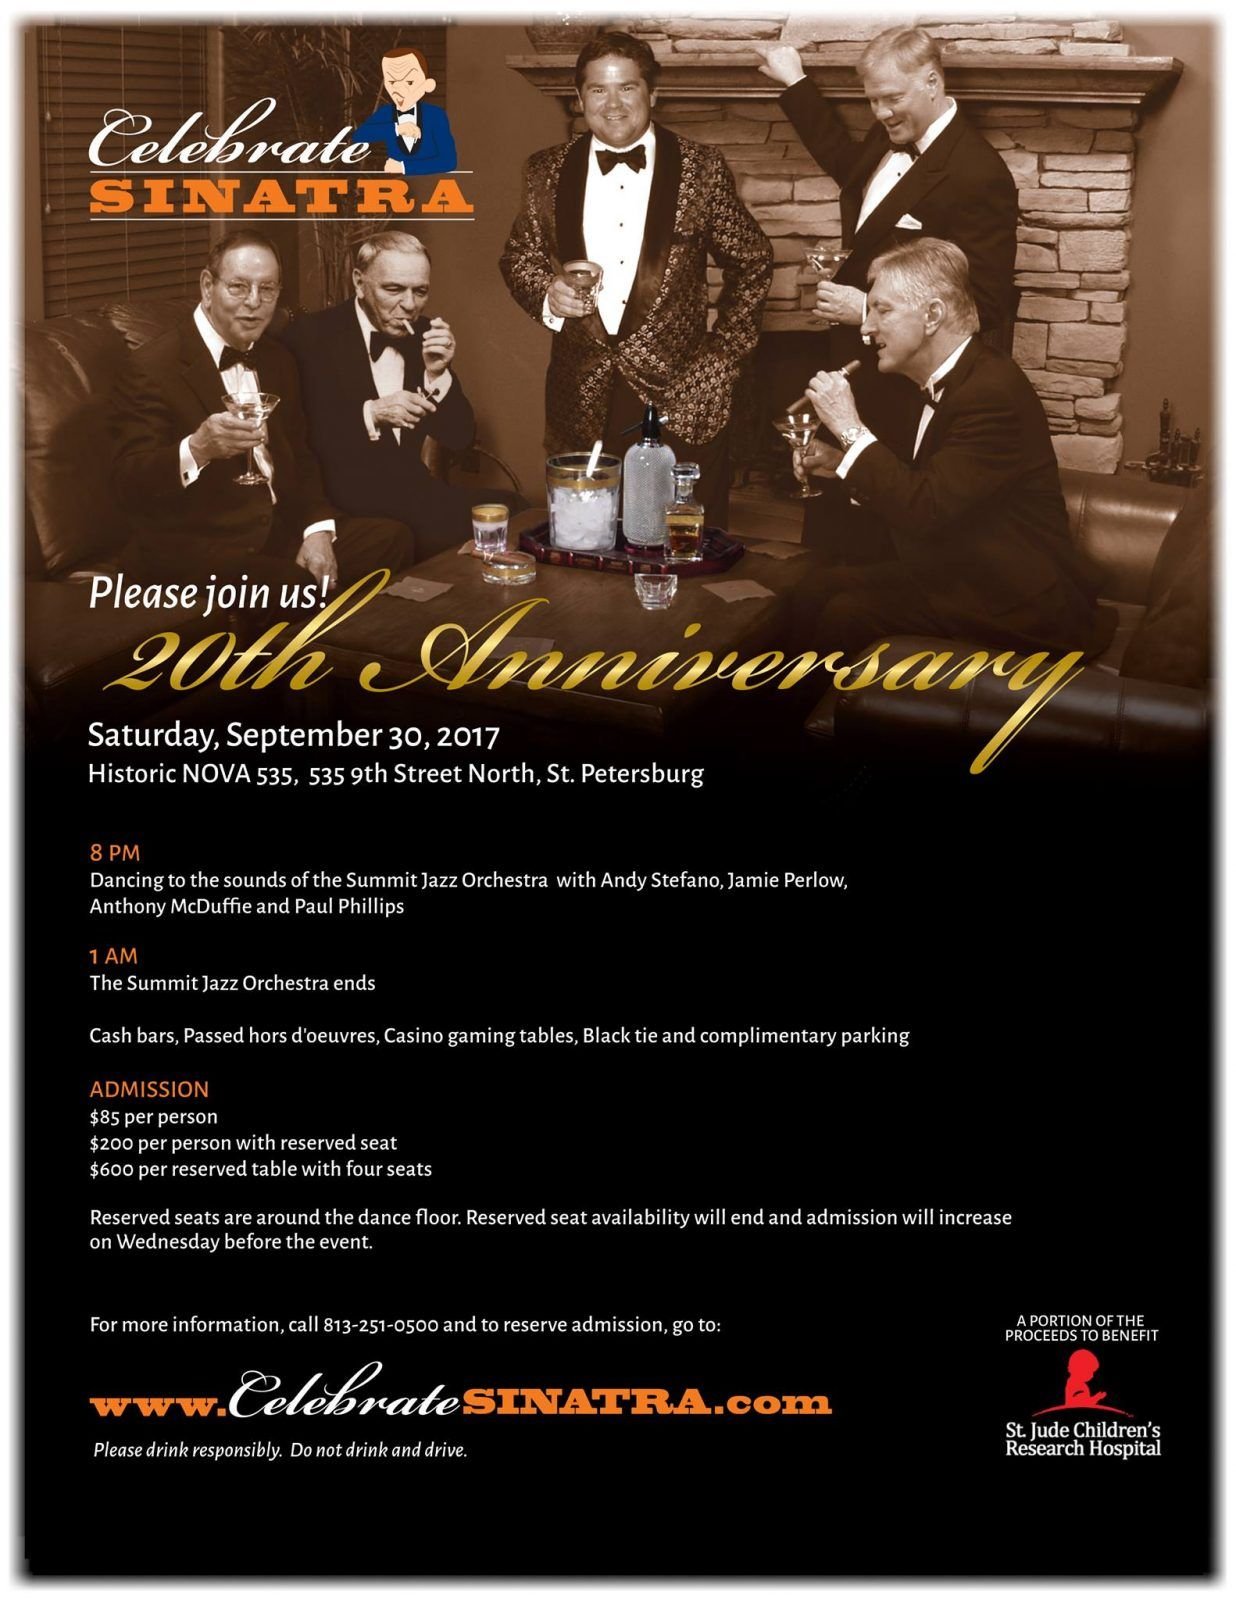 Celebrate Sinatra at NOVA 535 Sept 30, 2017 full flyer